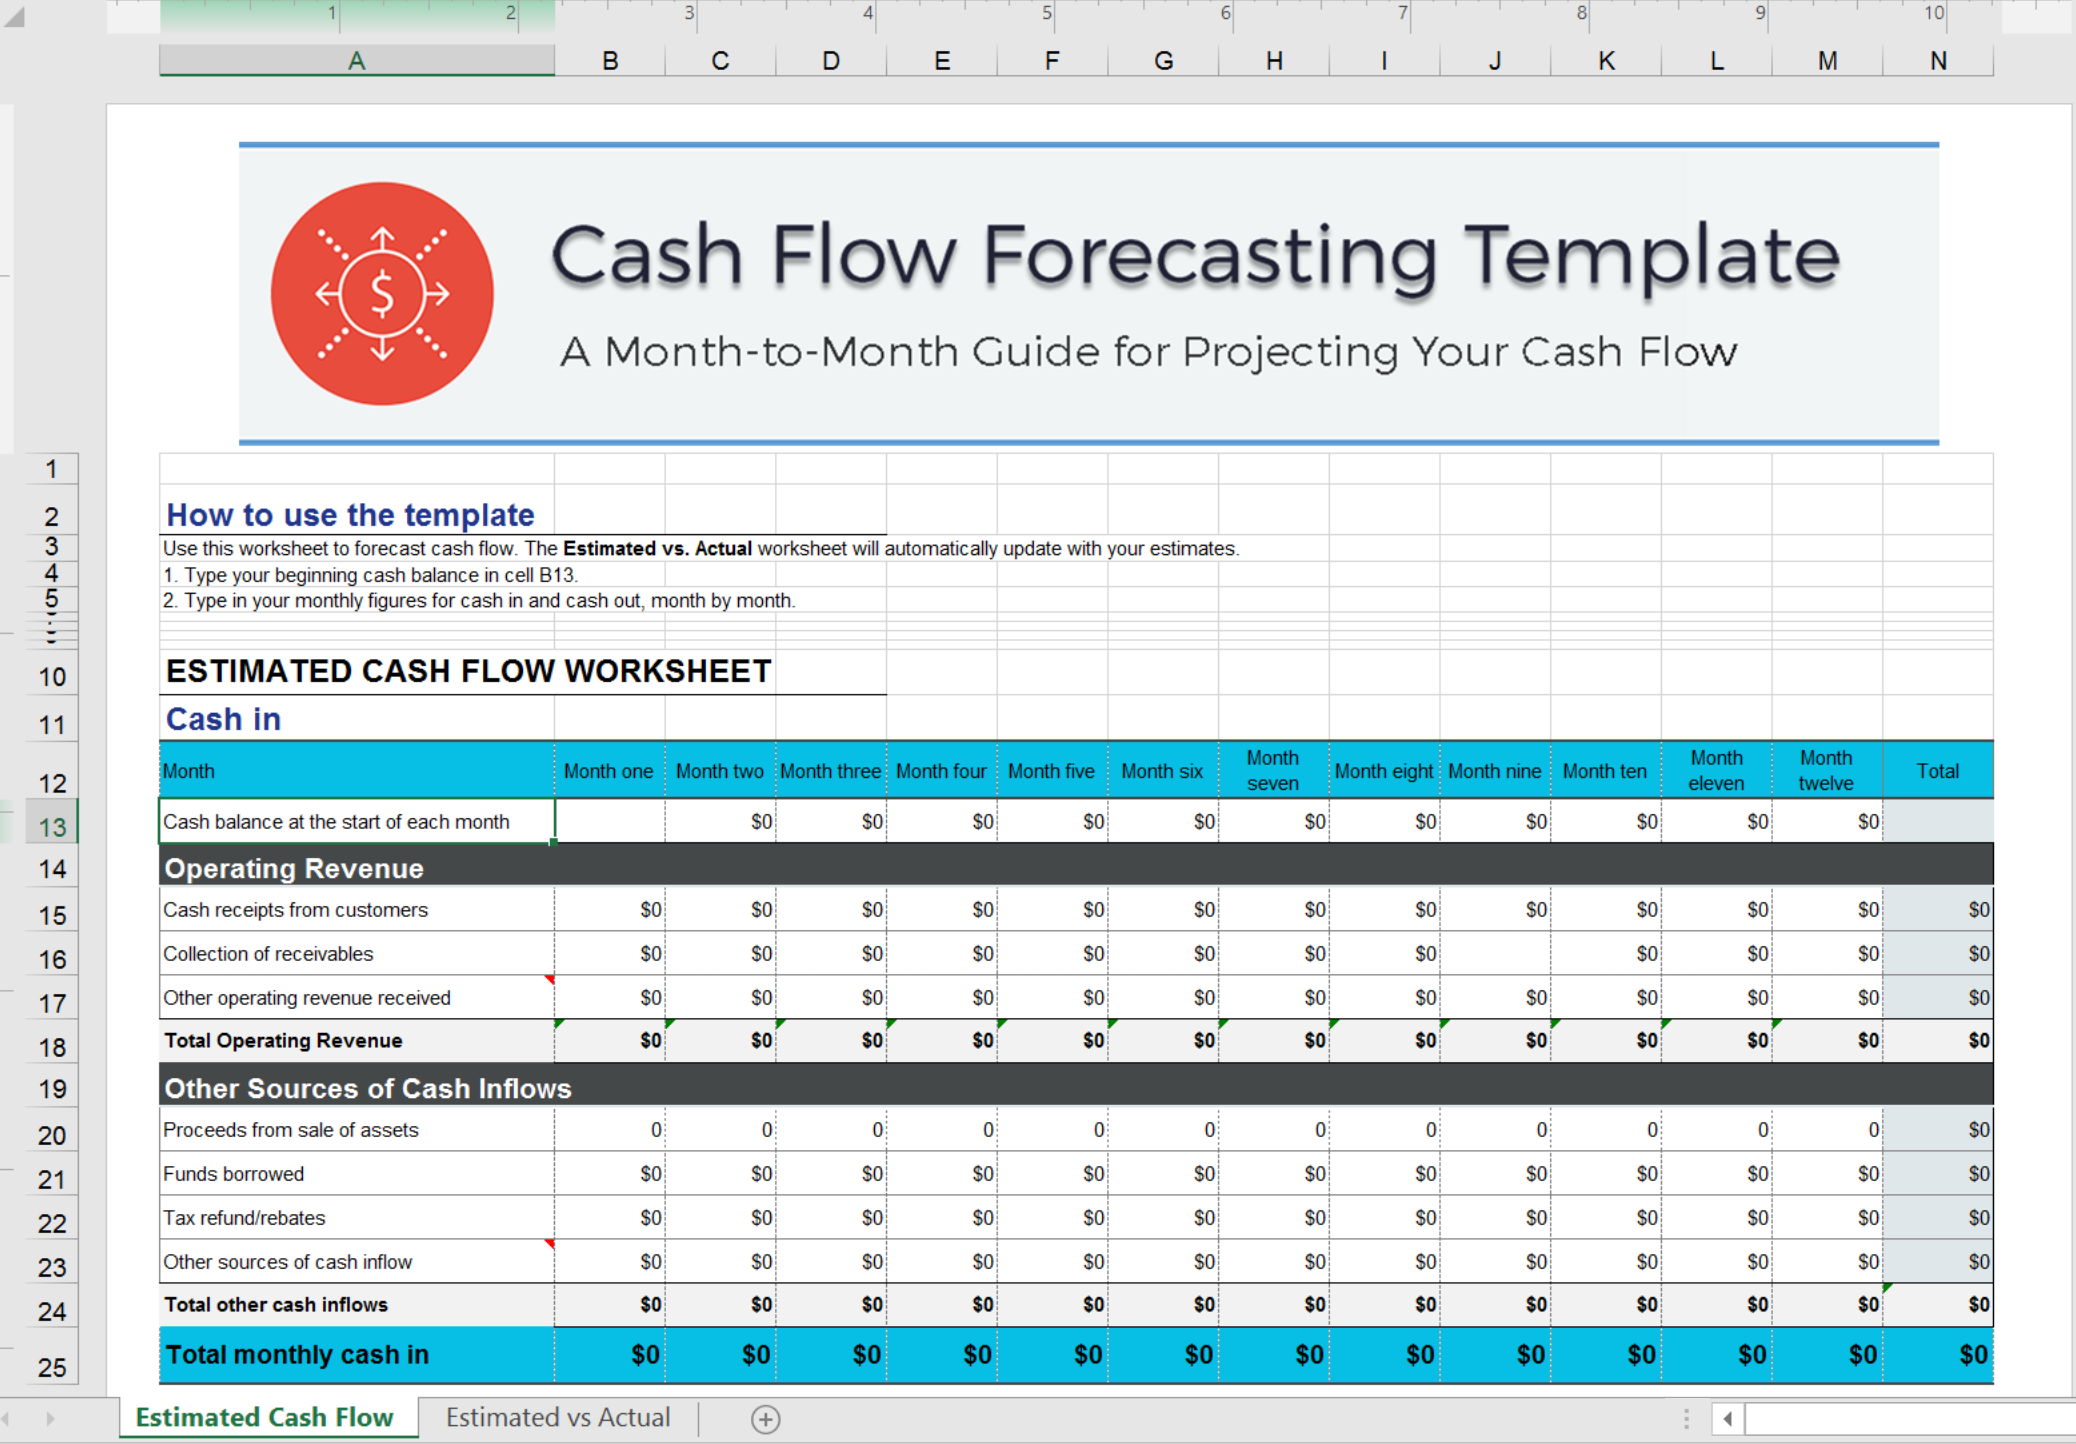 cash flow forecasting template 1png